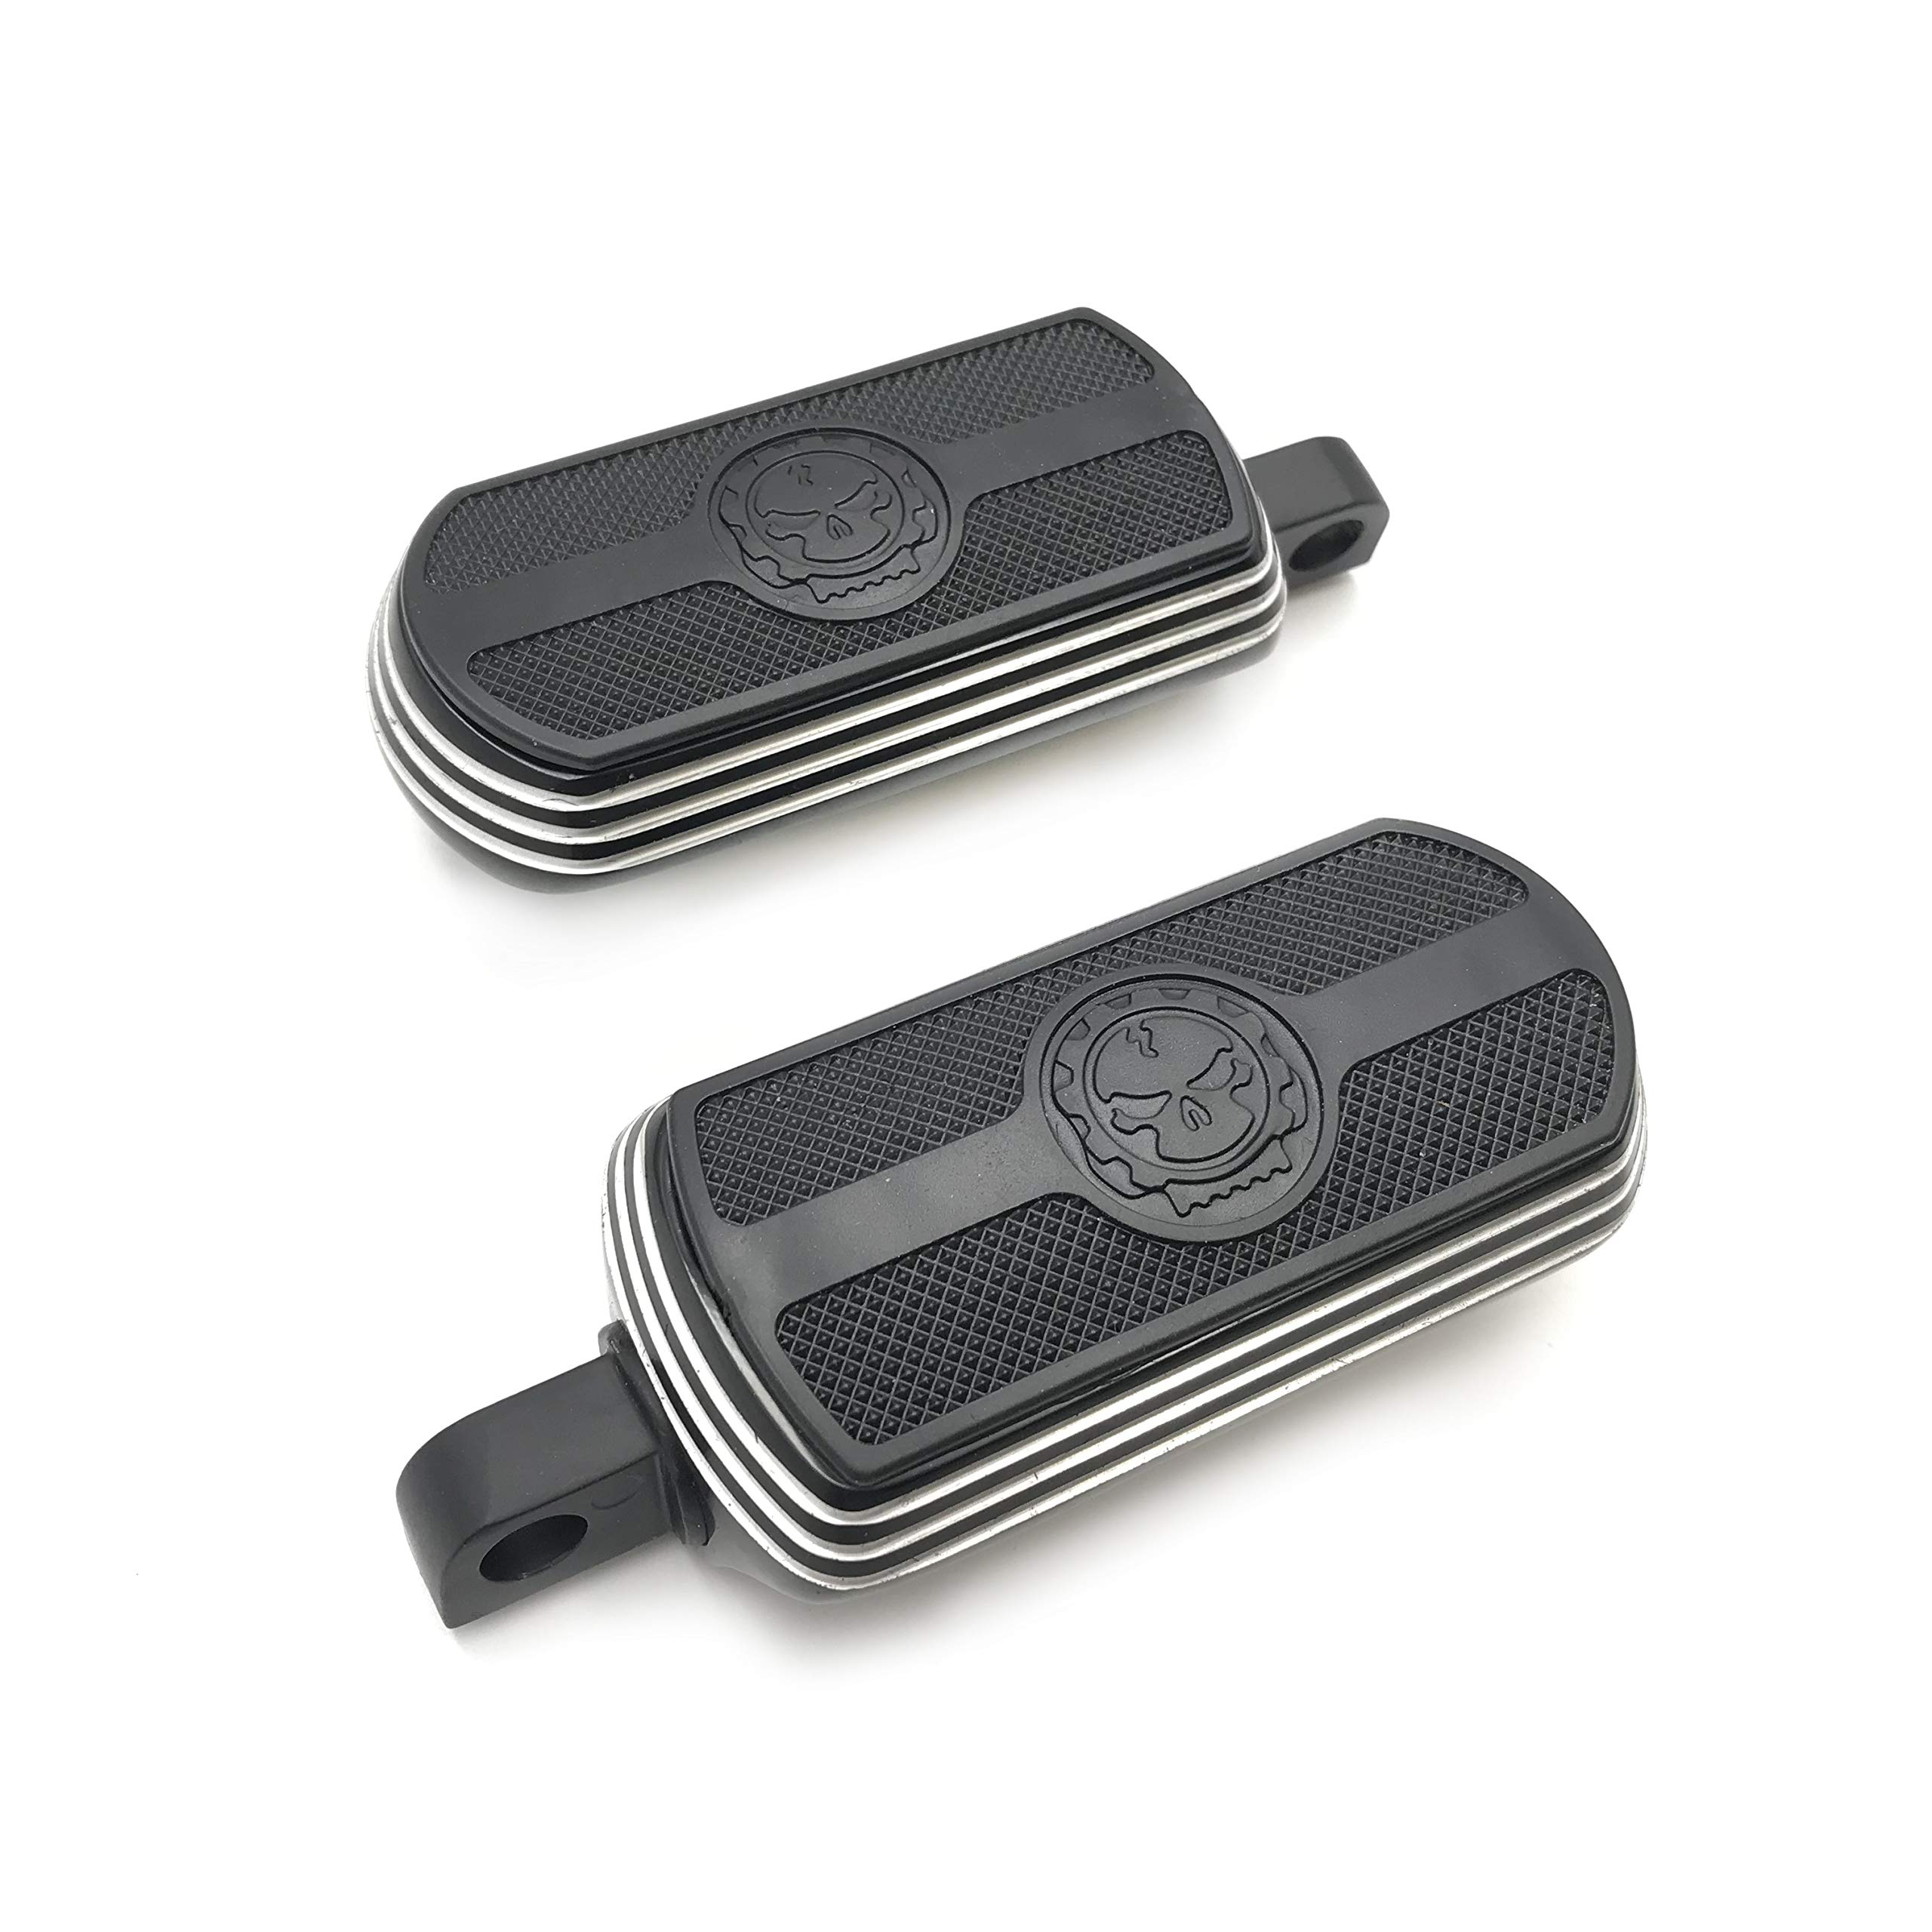 XKMT-MT216-115S-Gear Skull passenger footboard floorboard cover Compatible With Harley Touring Softail Dyna B07RC26VP5